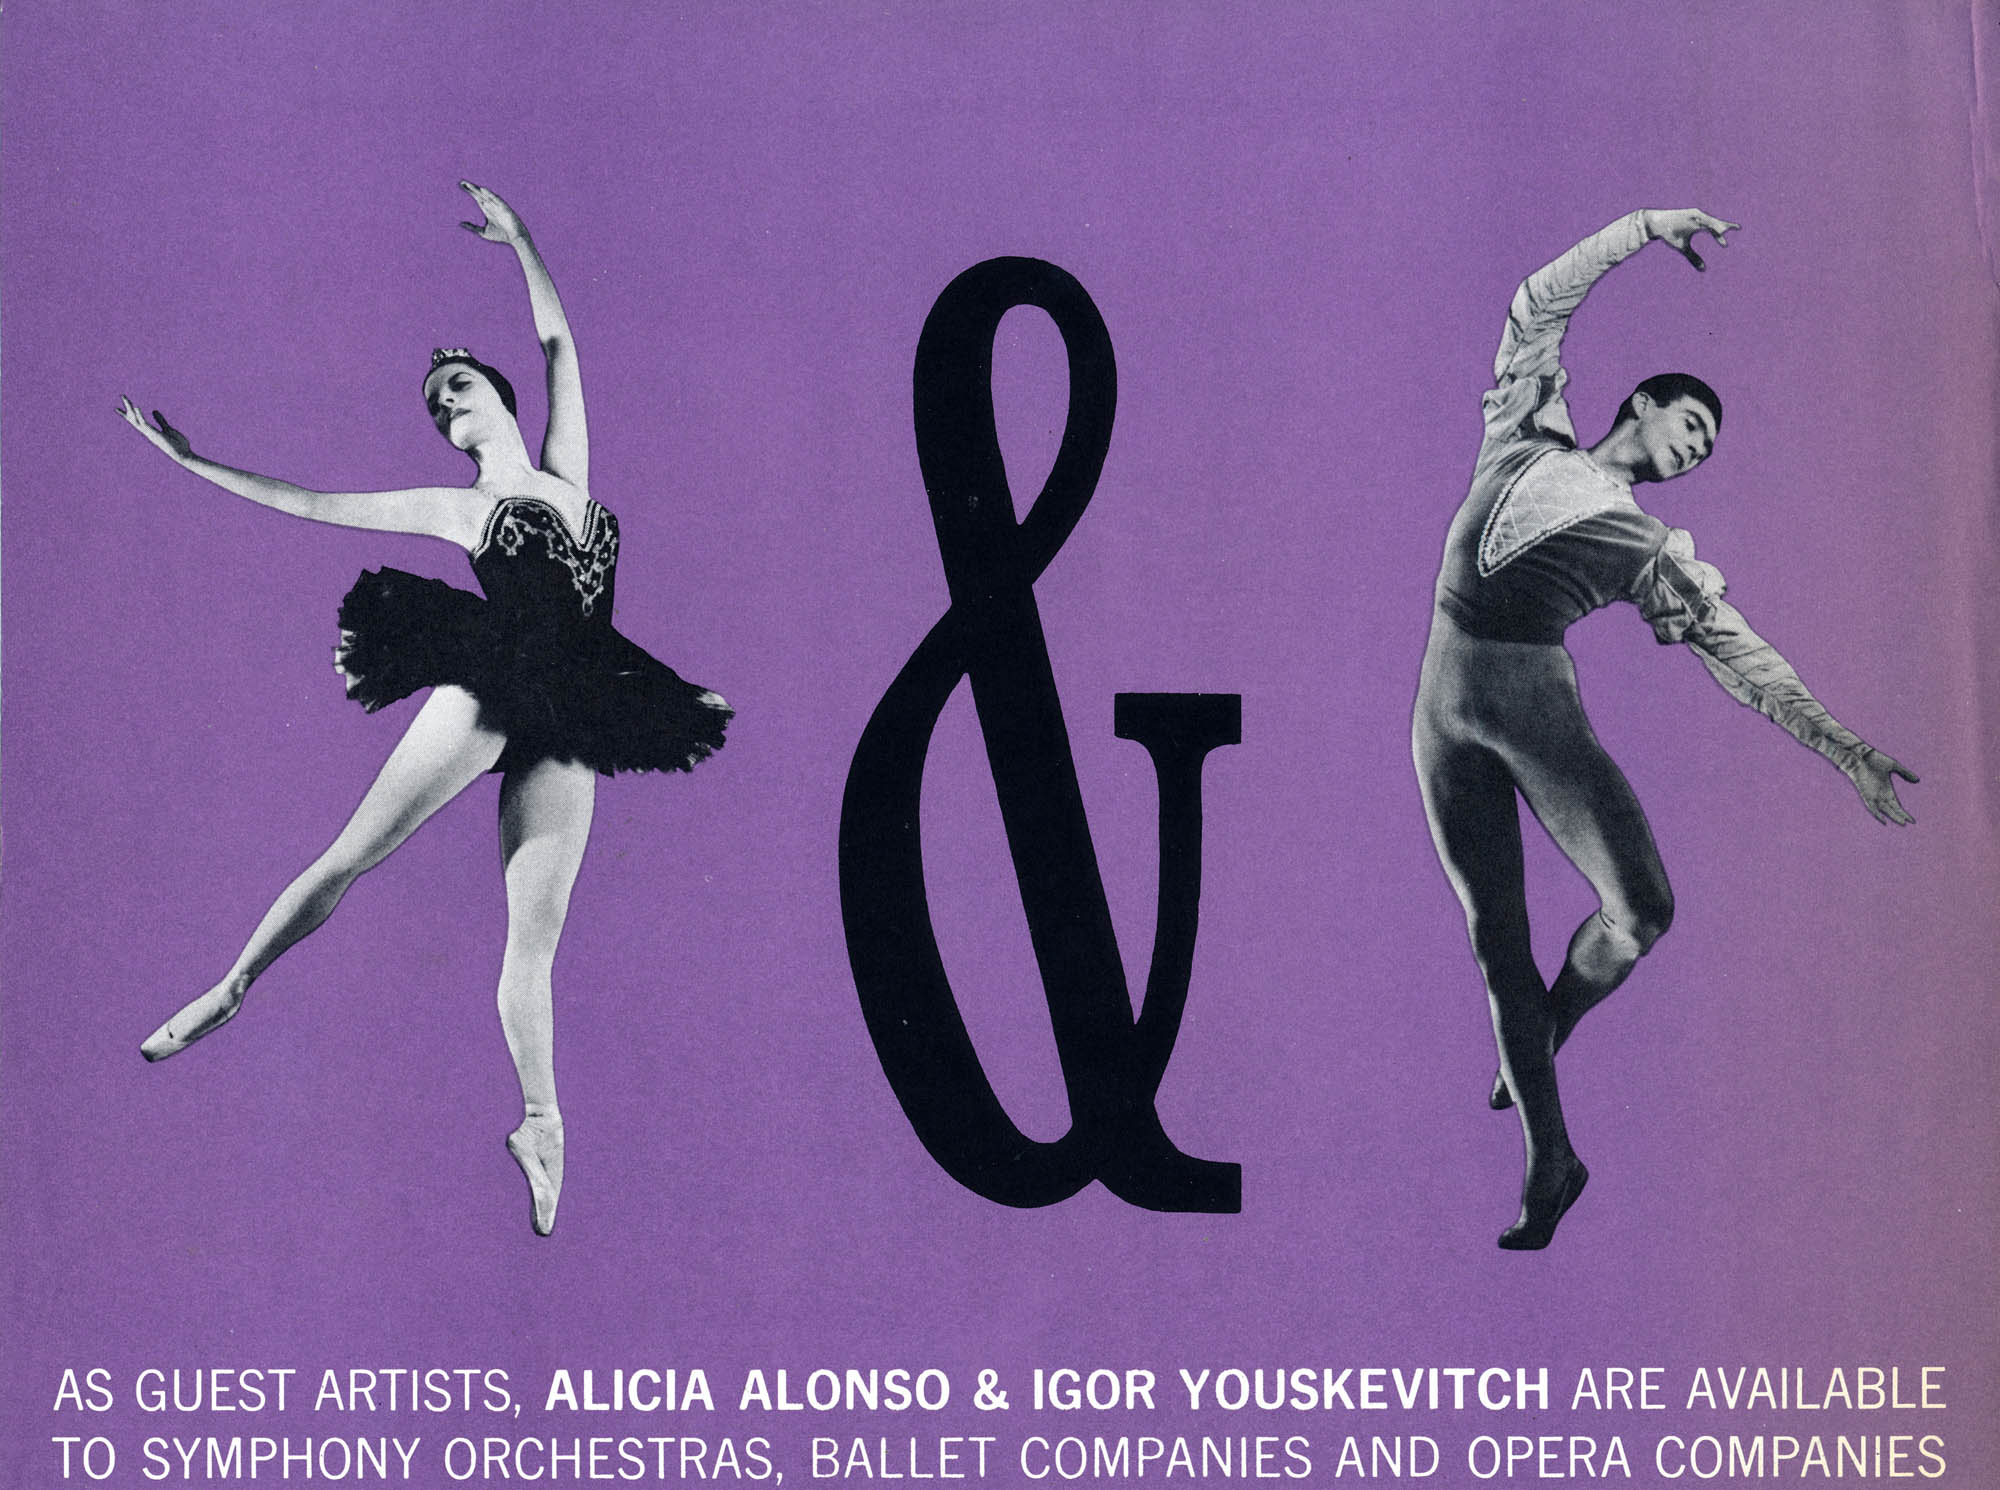 Alonso & Youskevitch Announcement New York 1950's